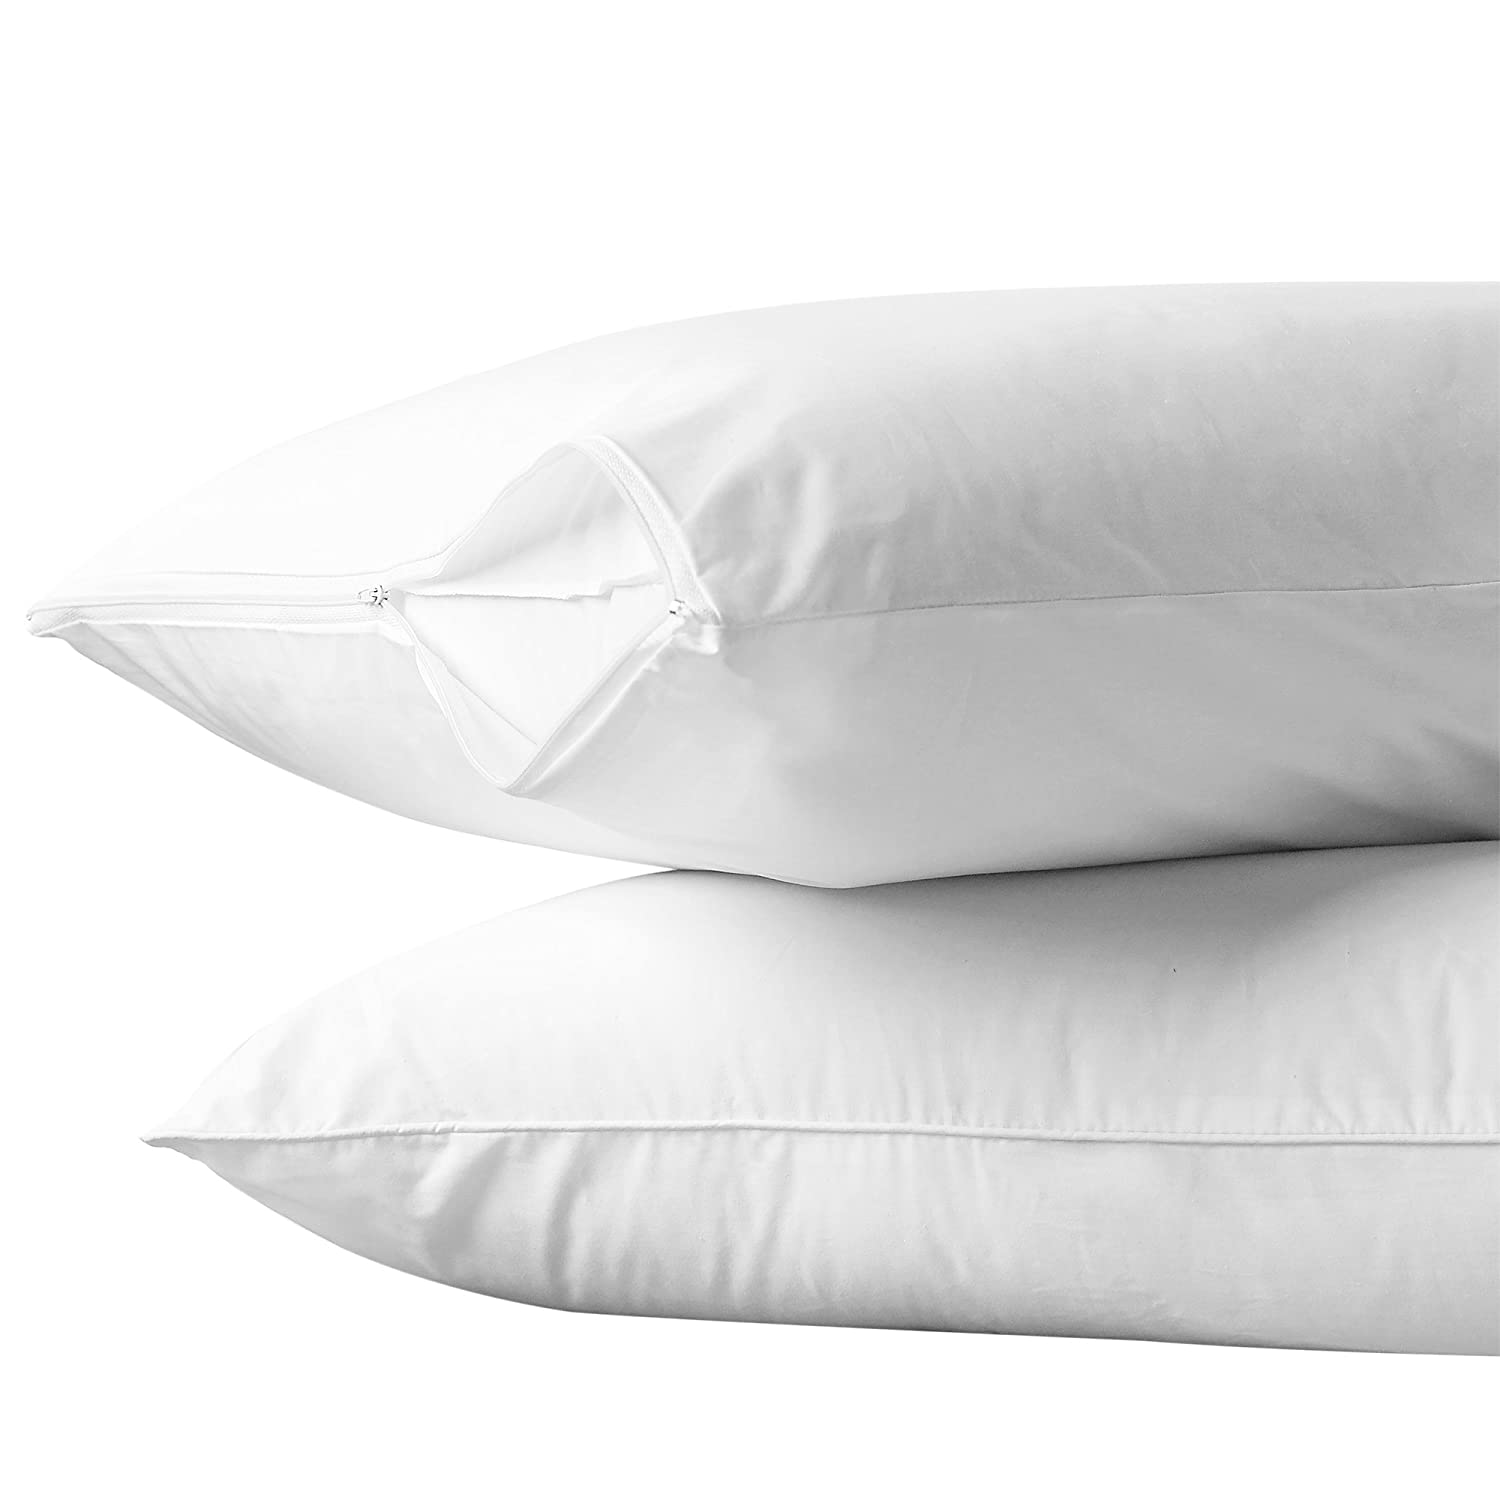 """AllerEase 100% Cotton Allergy Protection Pillow Protectors – Hypoallergenic, Zippered, Allergist Recommended, Prevent Collection of Dust Mites and Other Allergens, King Sized, 20"""" x 36"""" (Set of 2) Aller-Ease 6359L"""